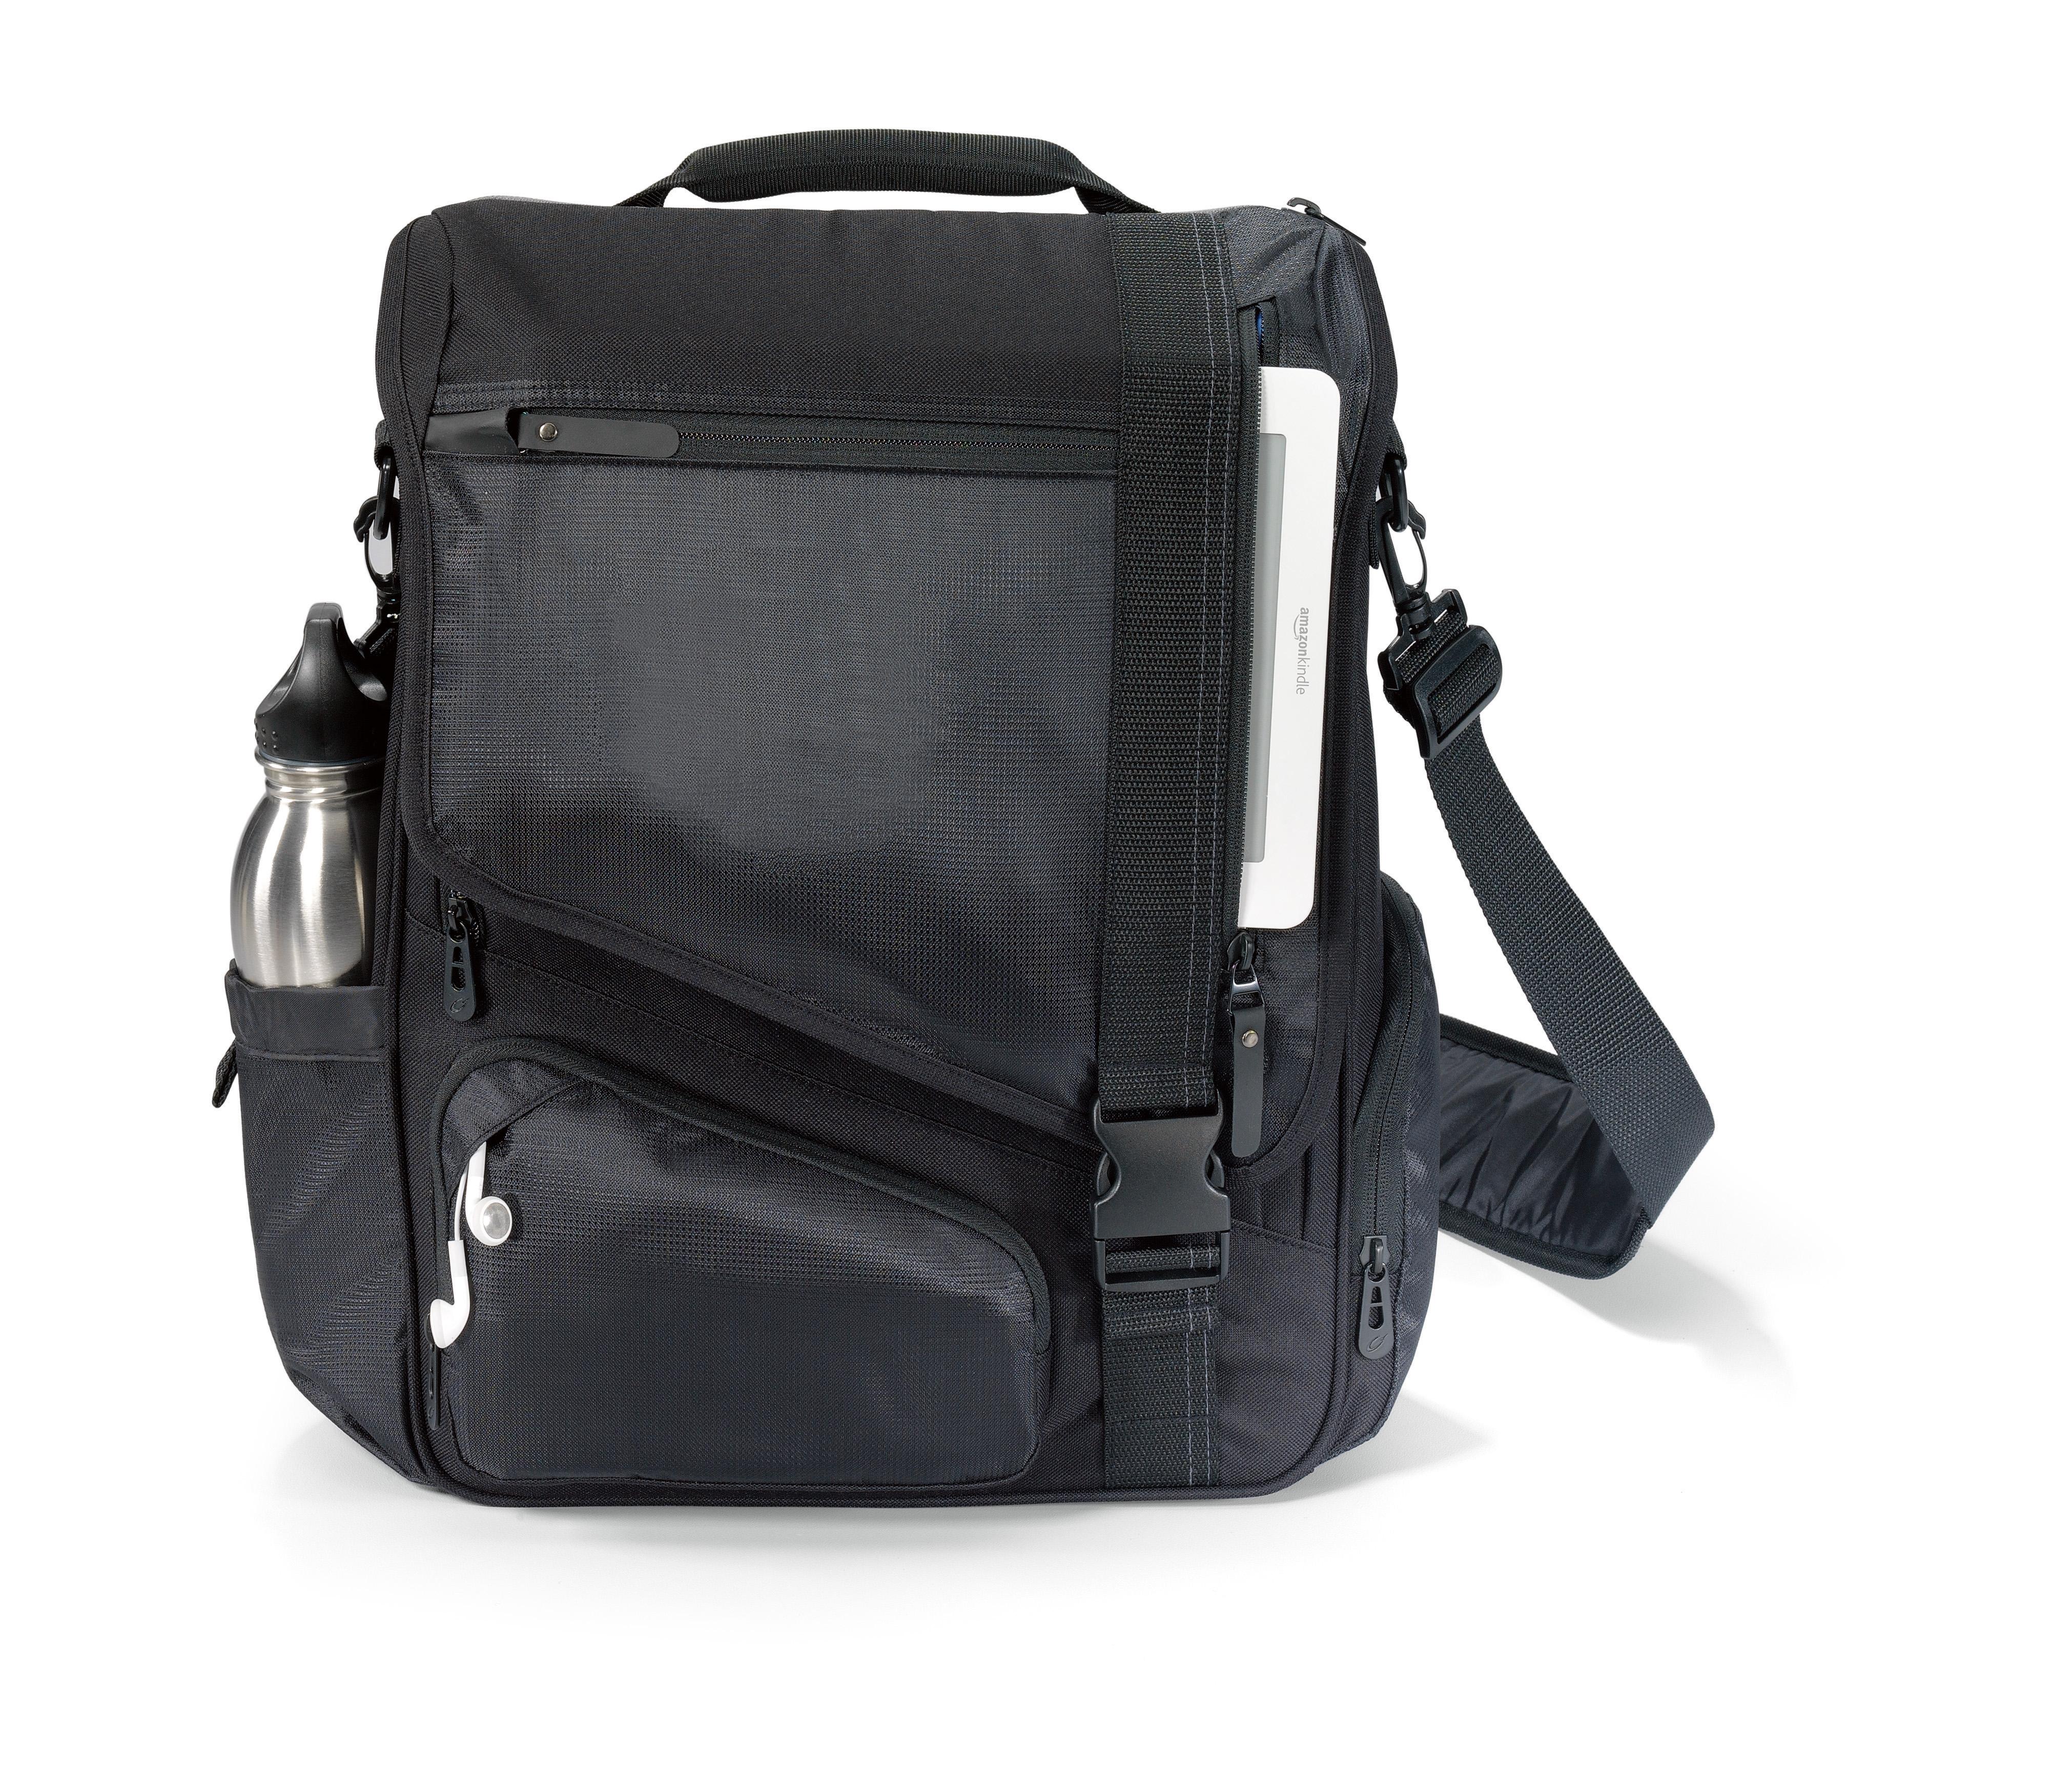 Gemline 2625 - Life in Motion™ Momentum Computer Messenger Bag